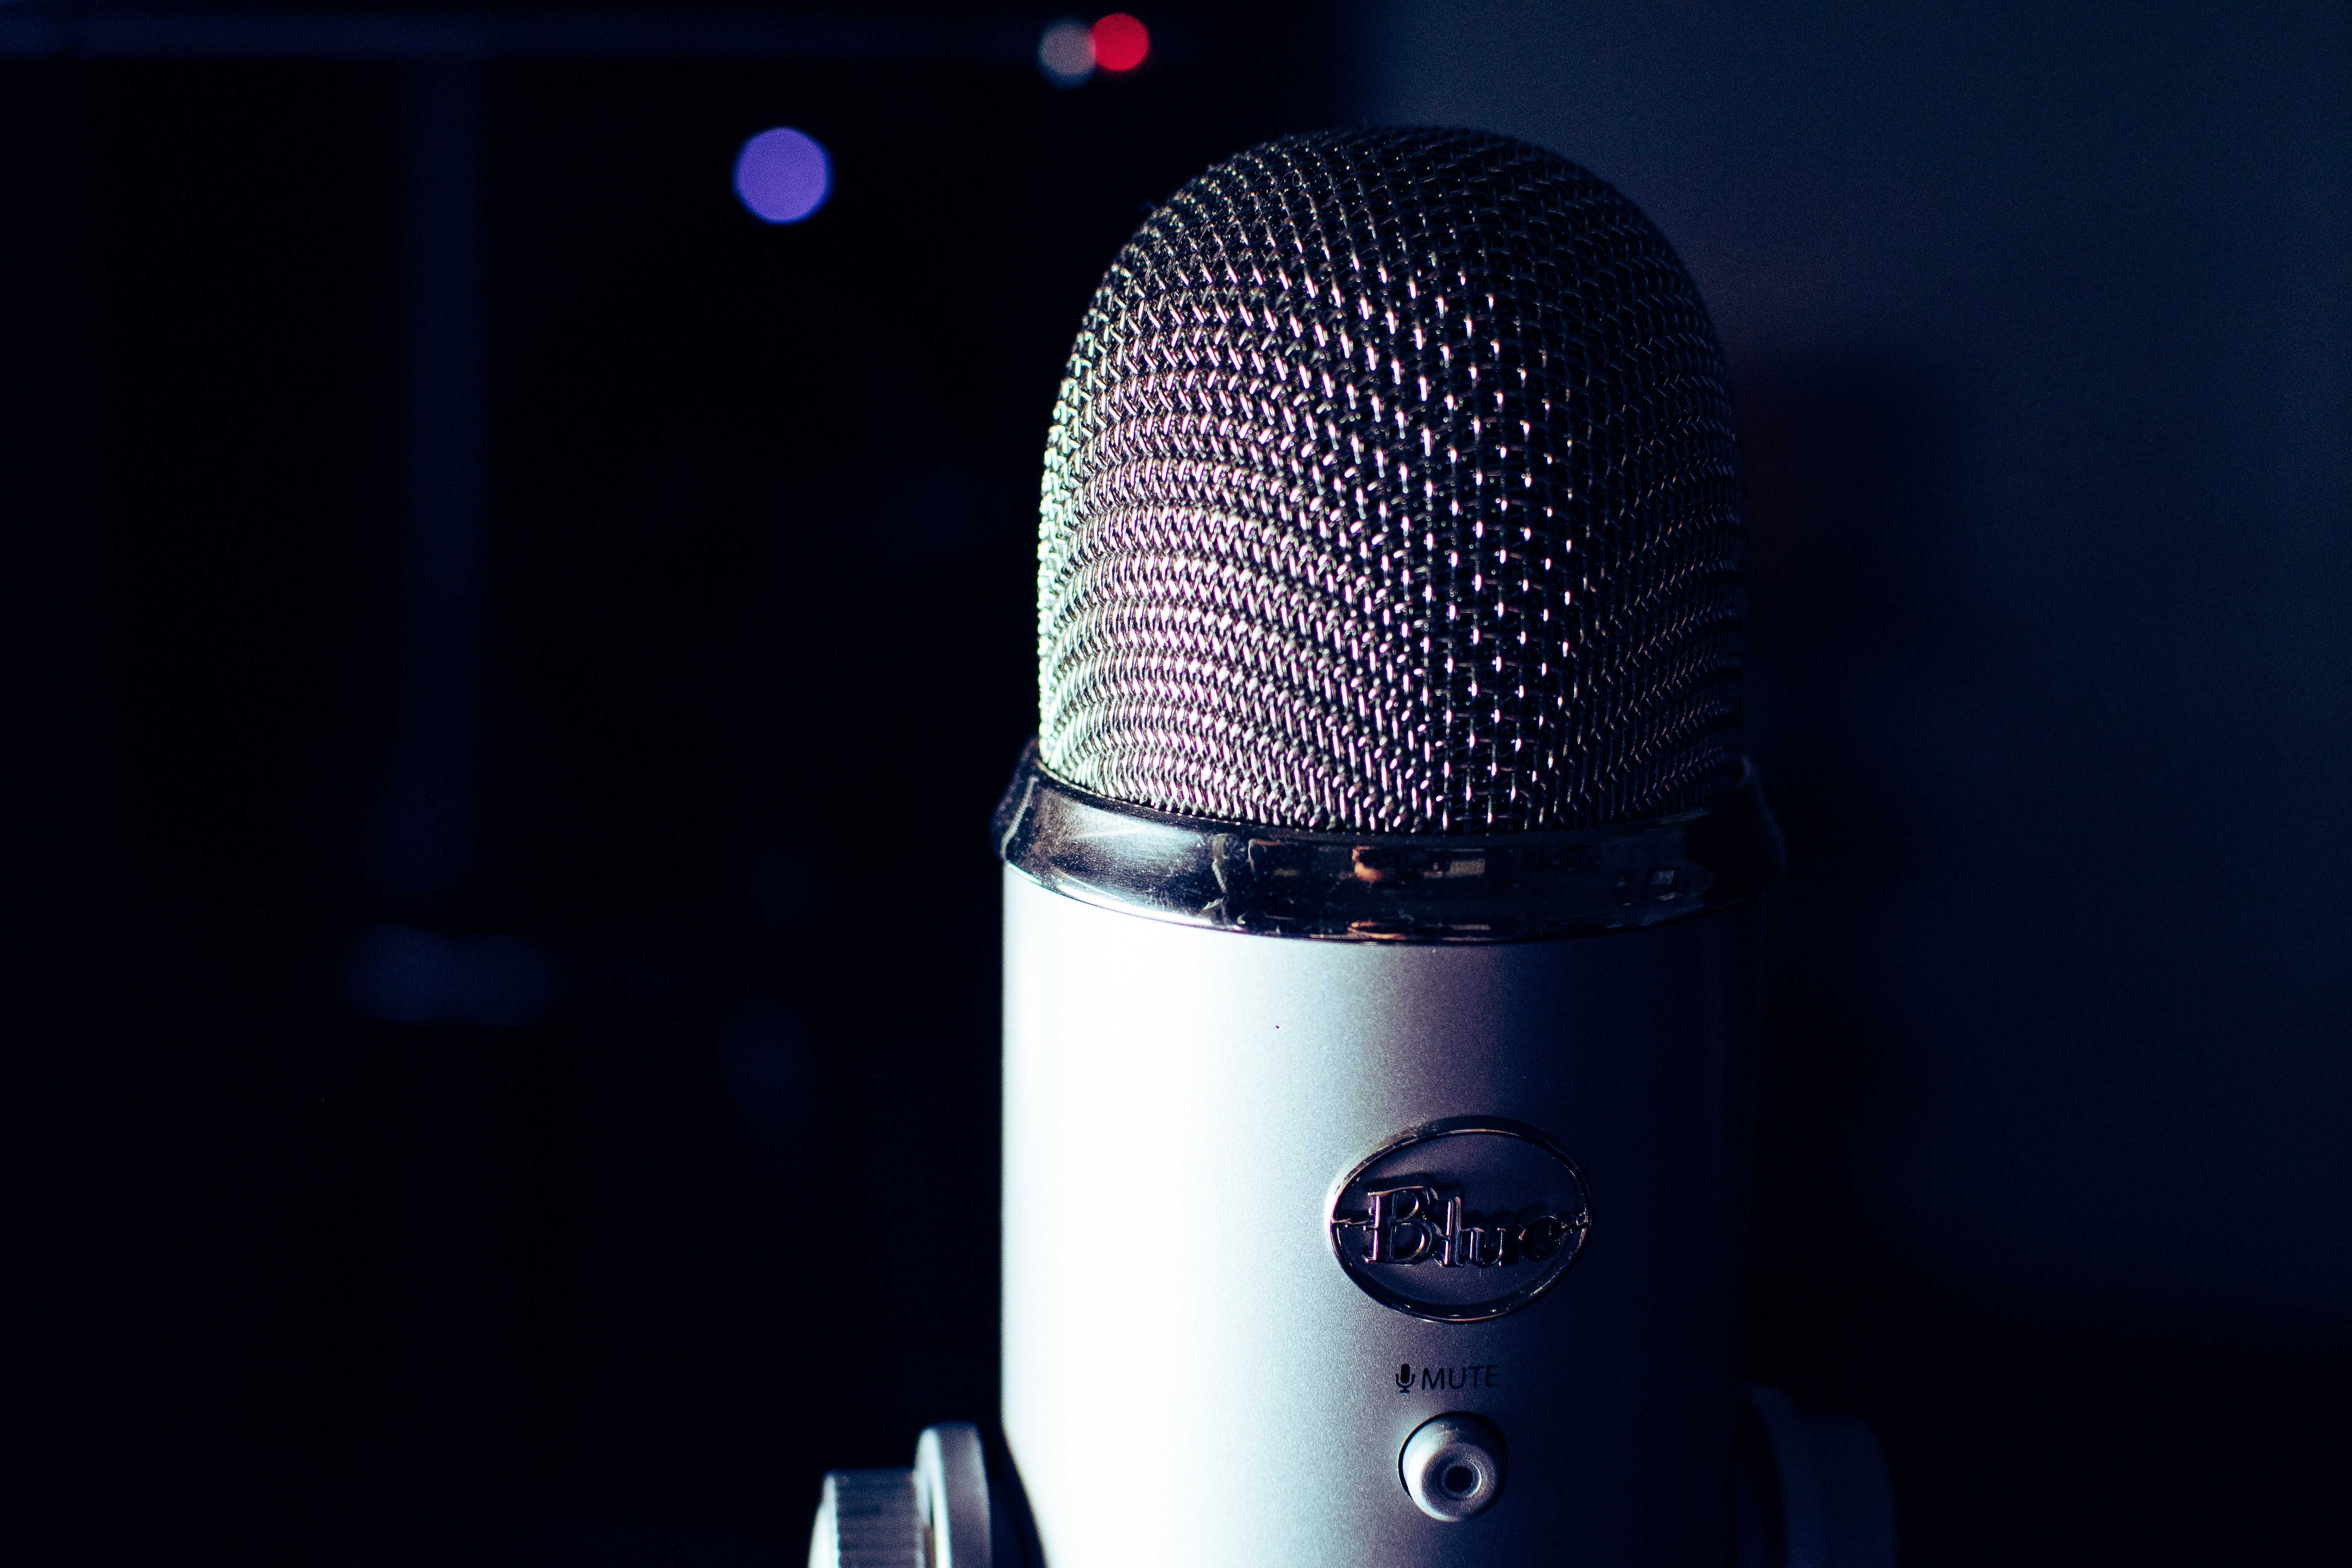 microphone for audio quality